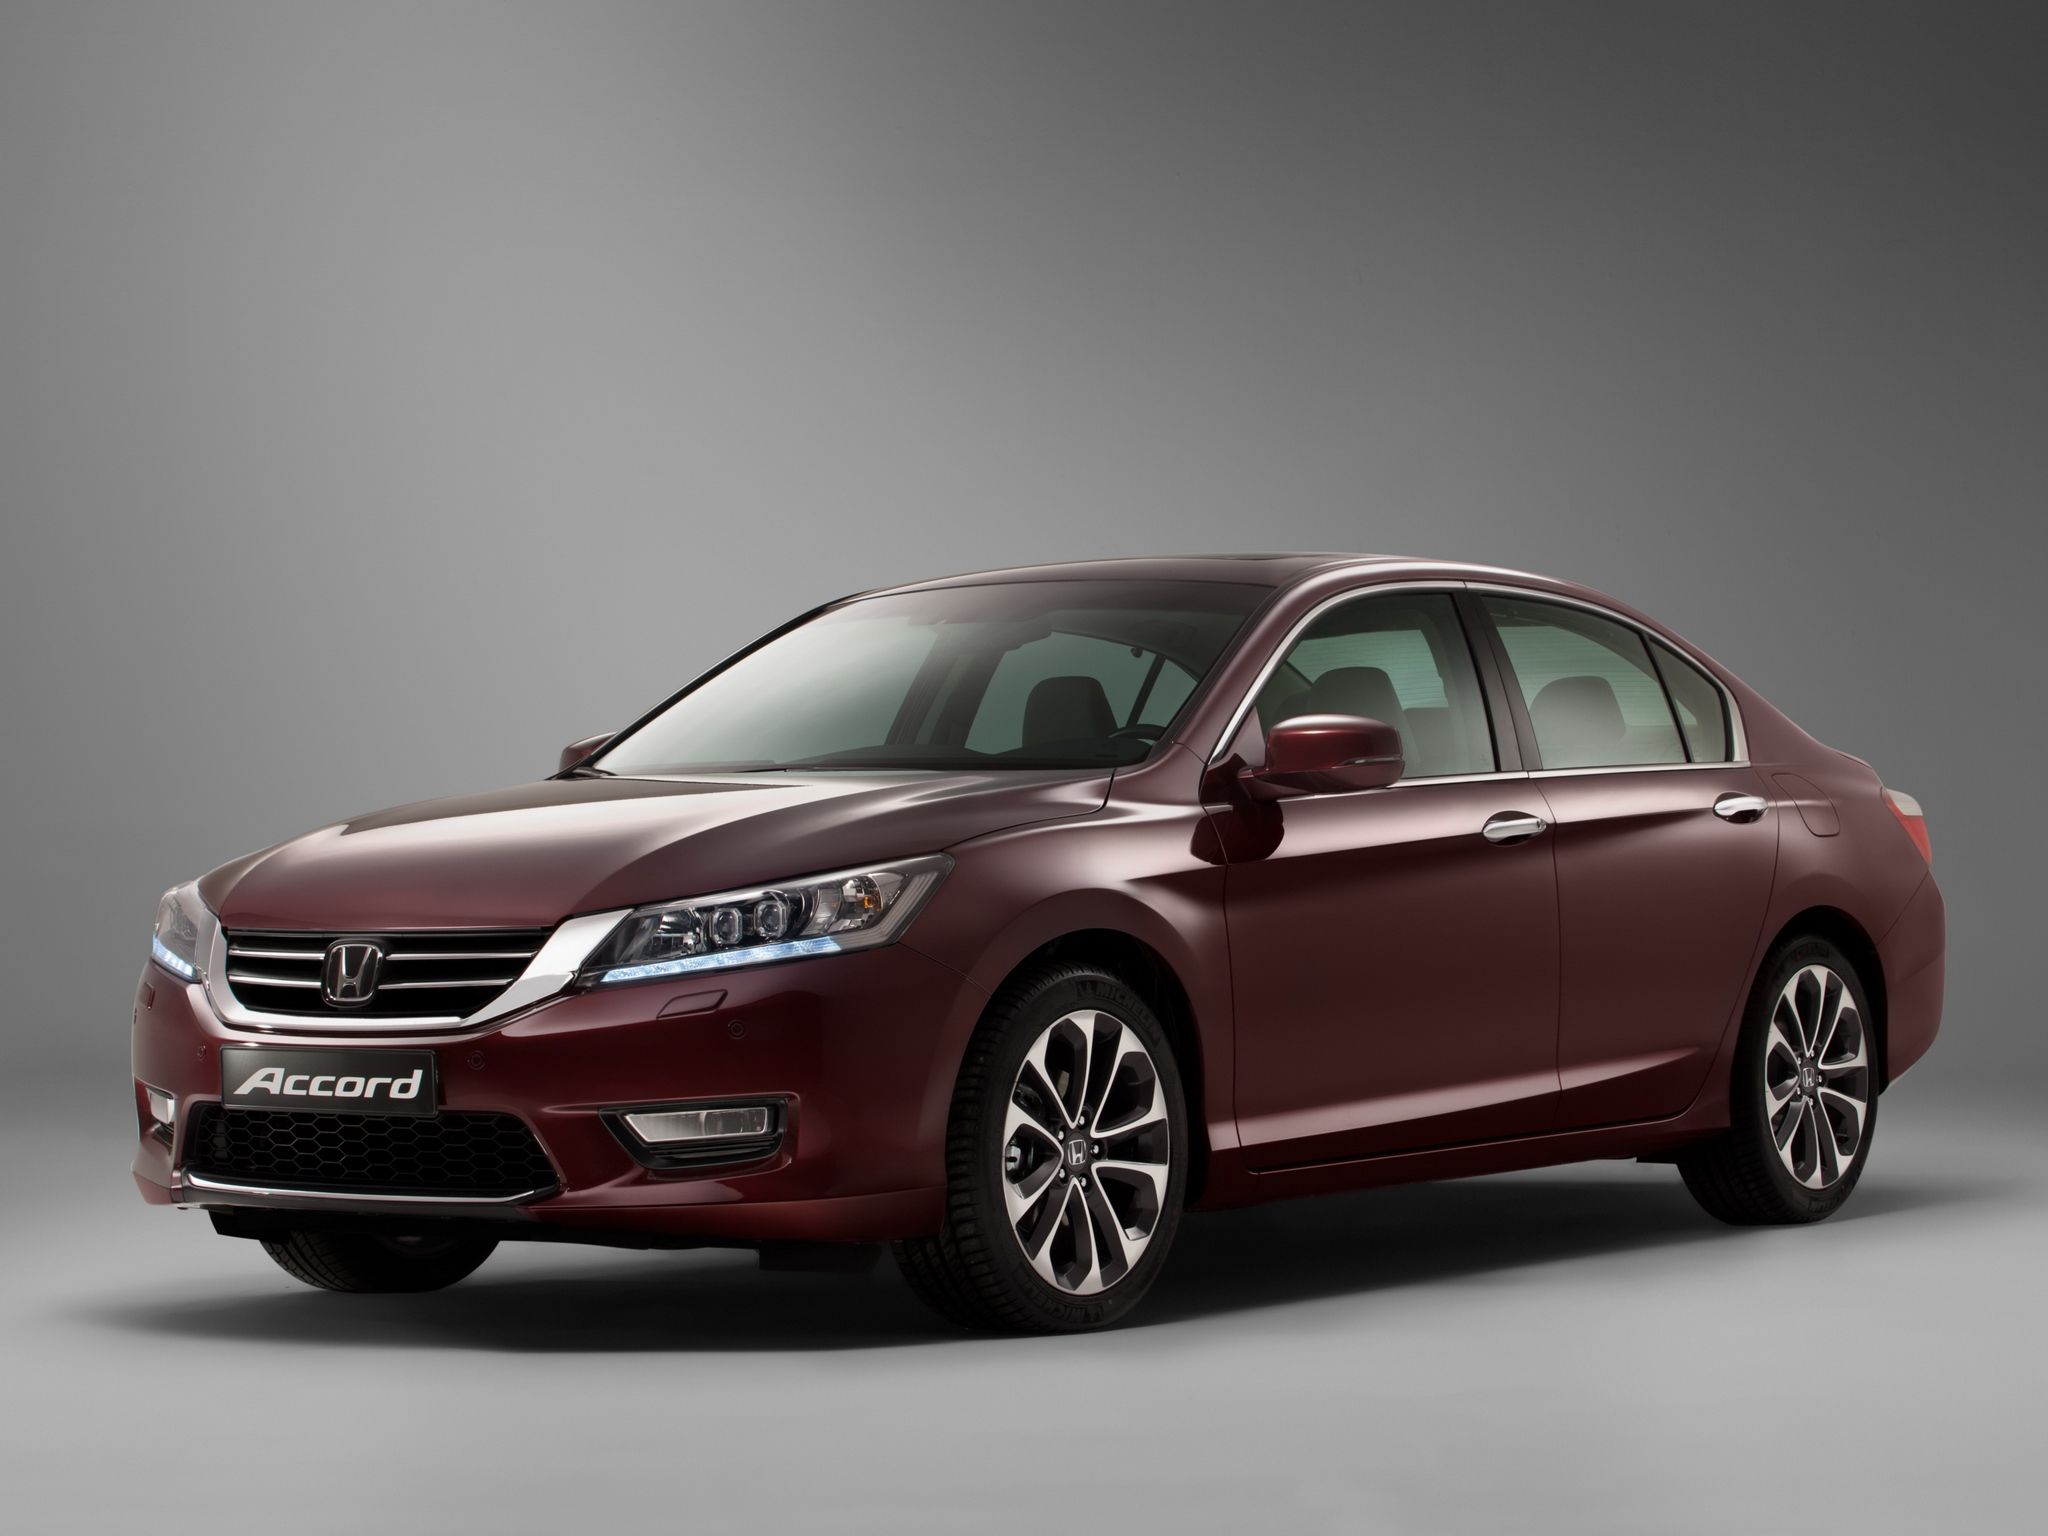 2013 Honda Accord V6 Sedan 2015 honda accord sedan